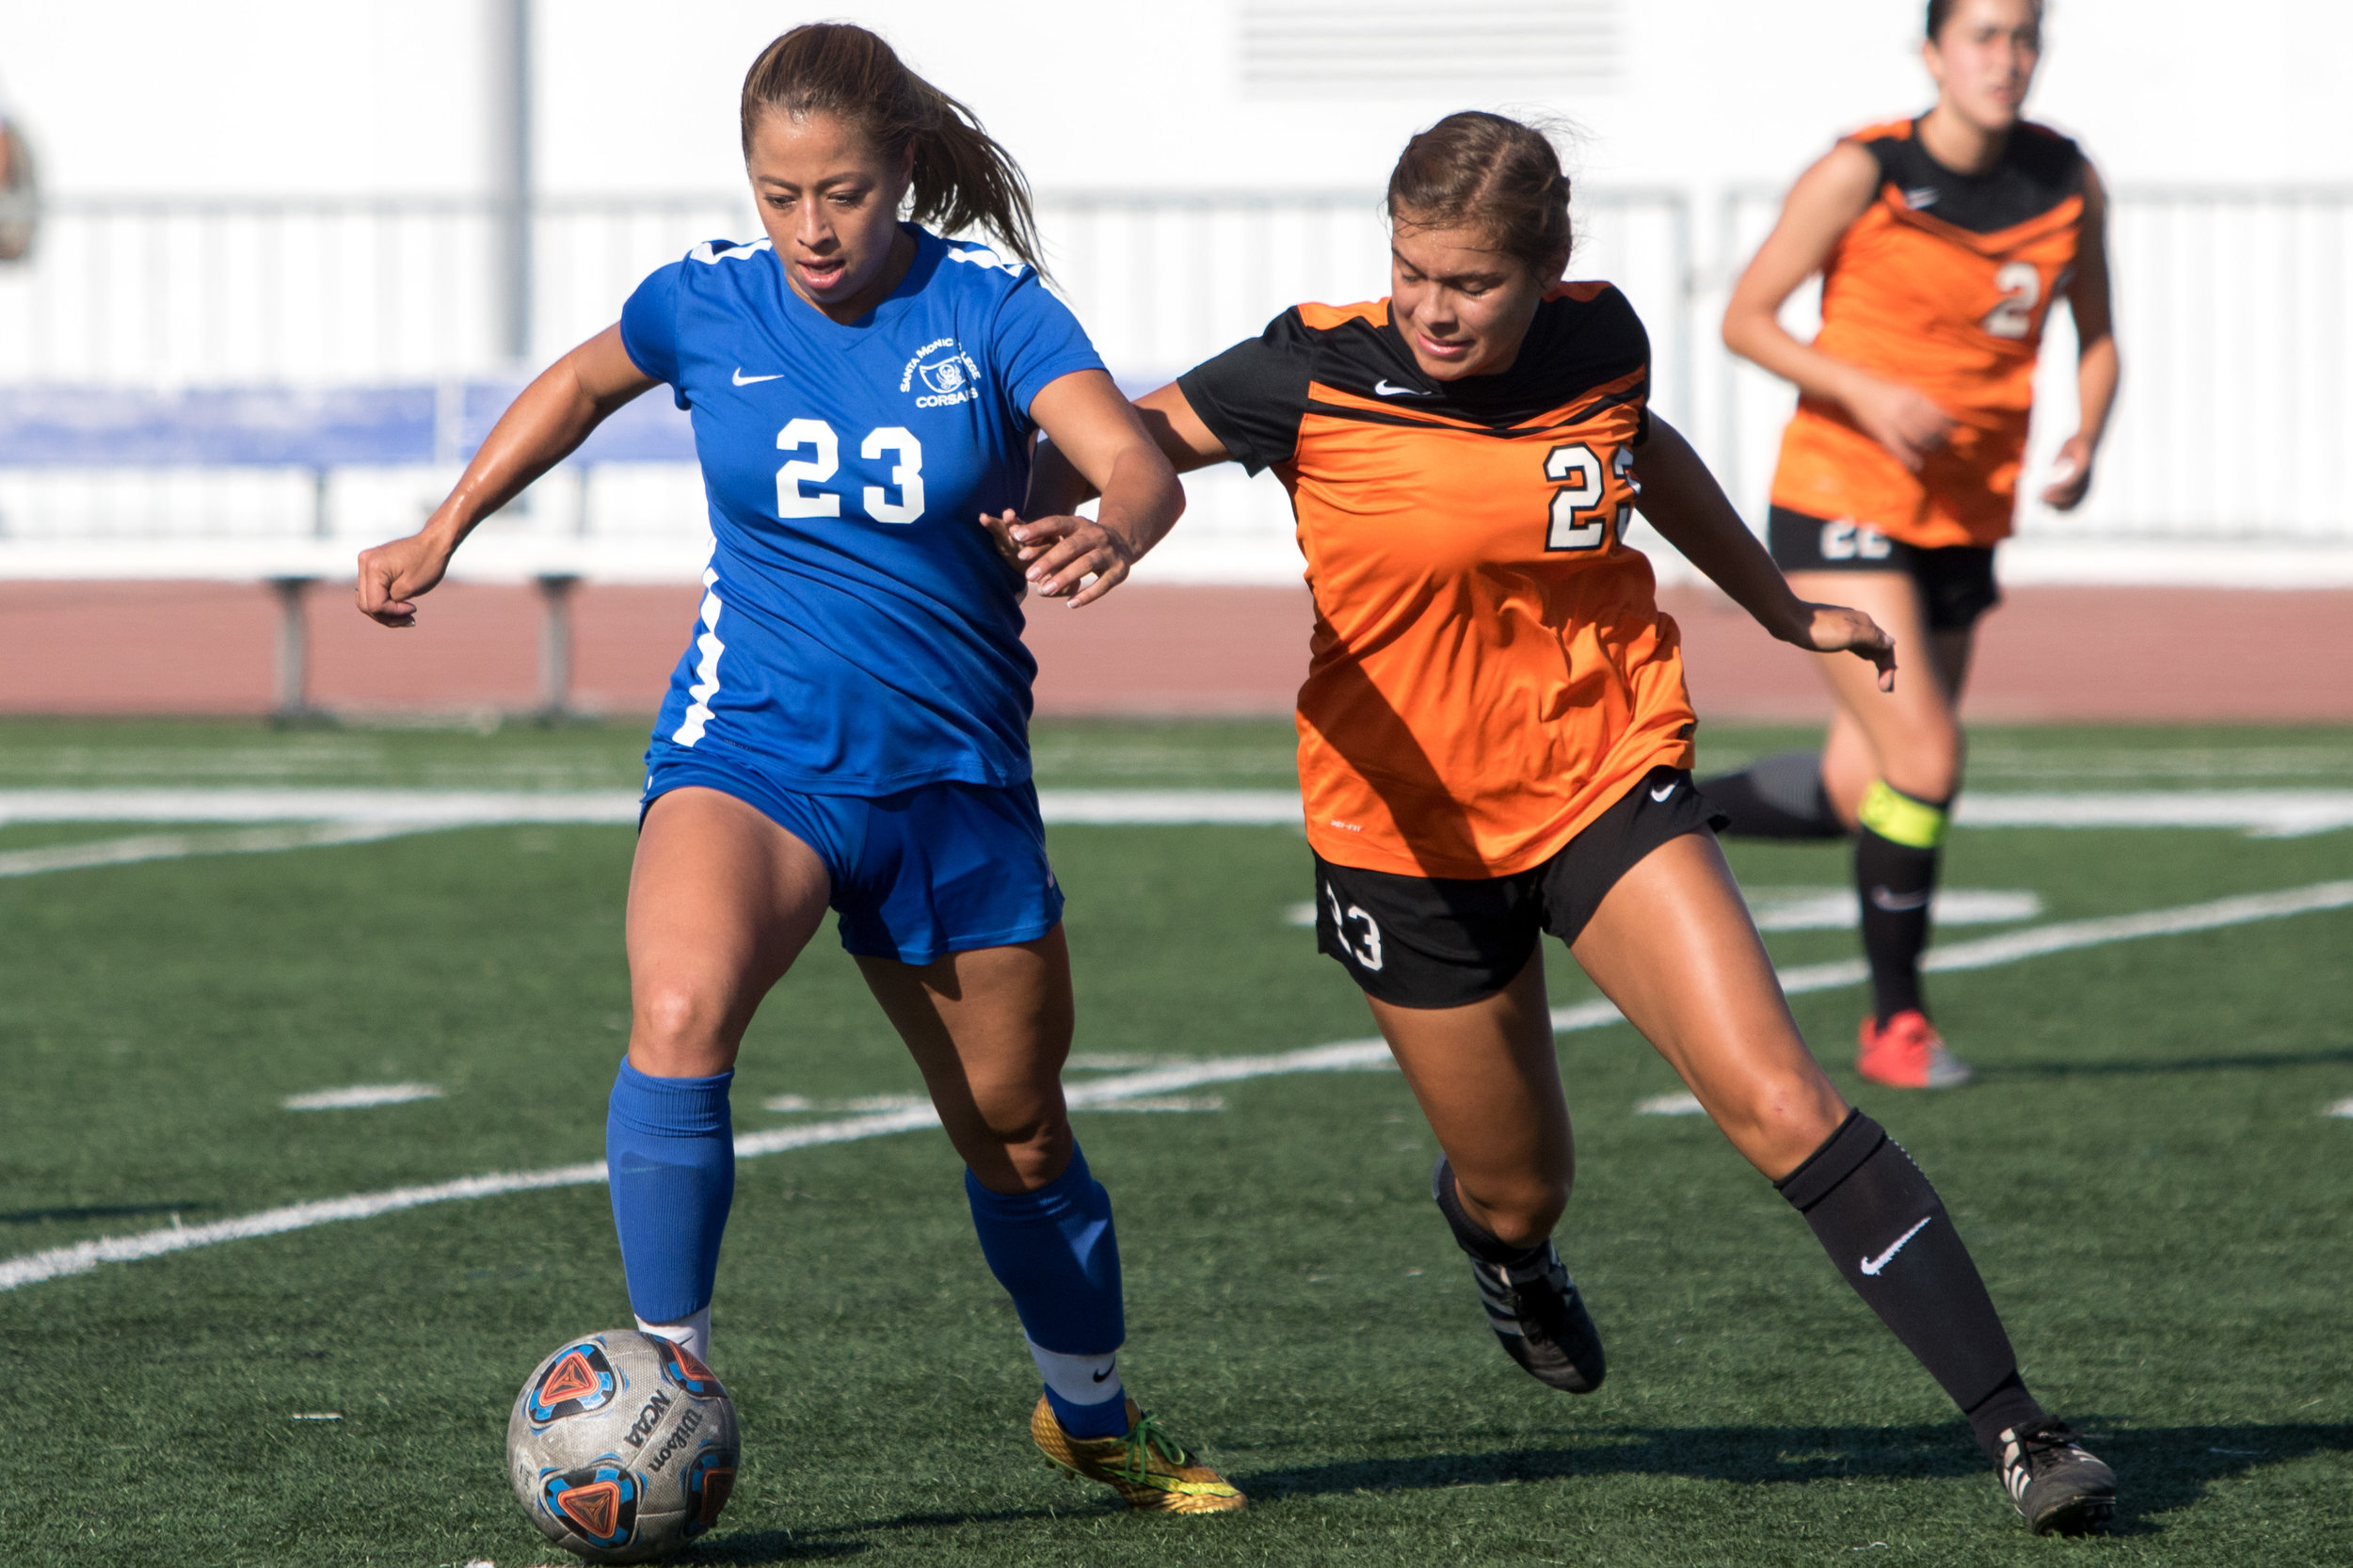 Santa Monica College Corsairs Freshman forward Daysi Serrano (23, left) keeps the ball away from Ventura College Pirates freshman forward Audrey Castillo (24, right). The Corsairs were able to come out with a 2-1 victory at the Corsair Field located on Santa Monica Colleges Main Campus in Santa Monica California on September 26, 2017. (Photo By: Zane Meyer-Thornton)